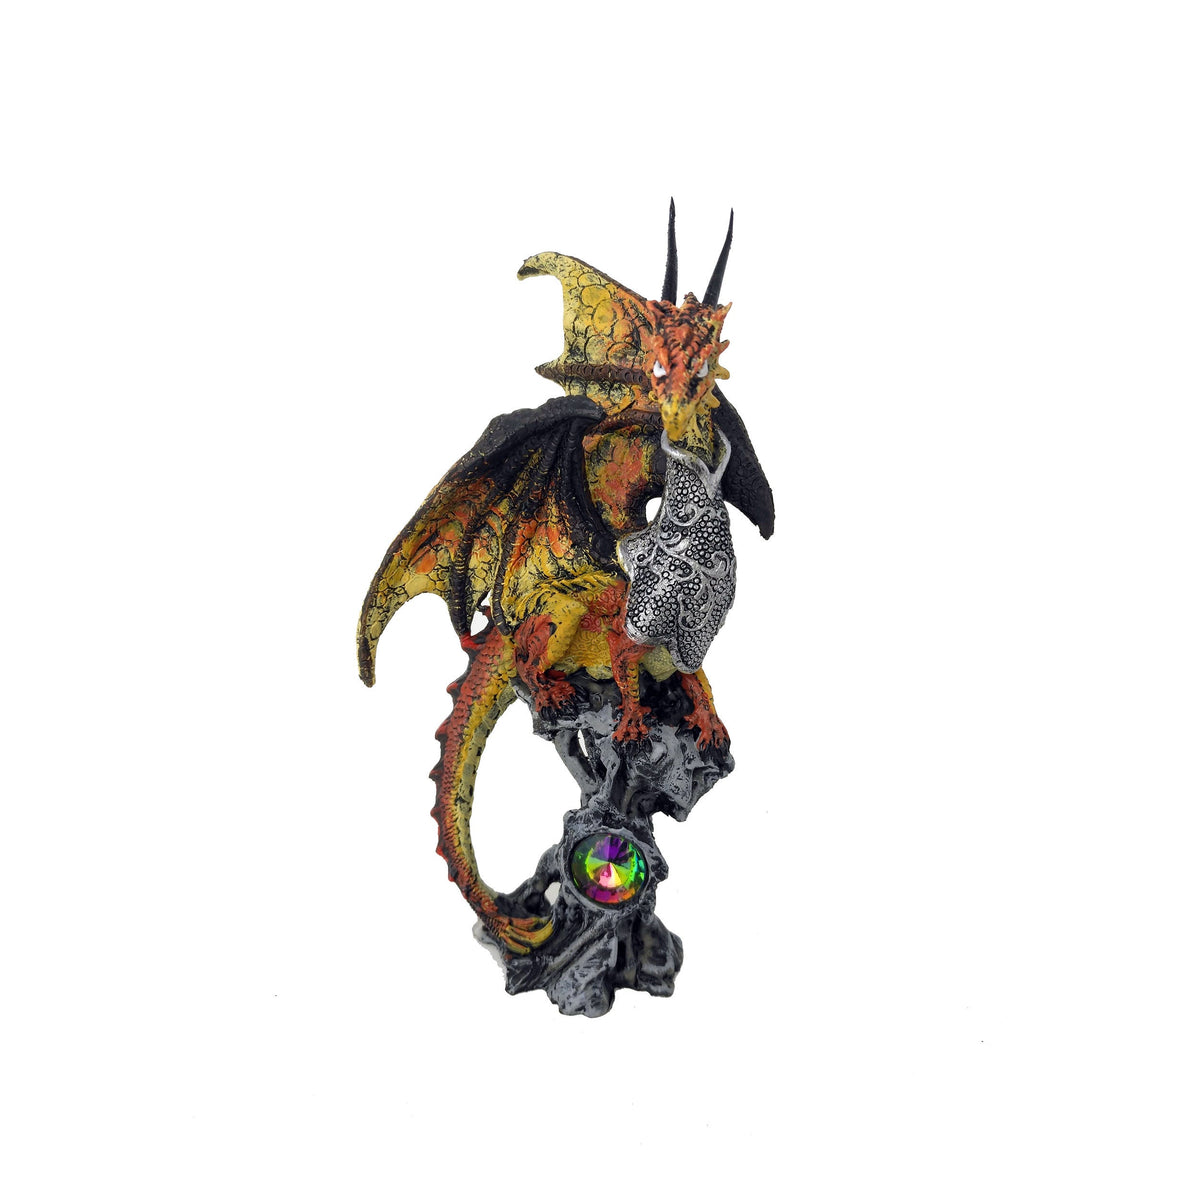 Gold Dragon Protecting Jewel On Perch Statue